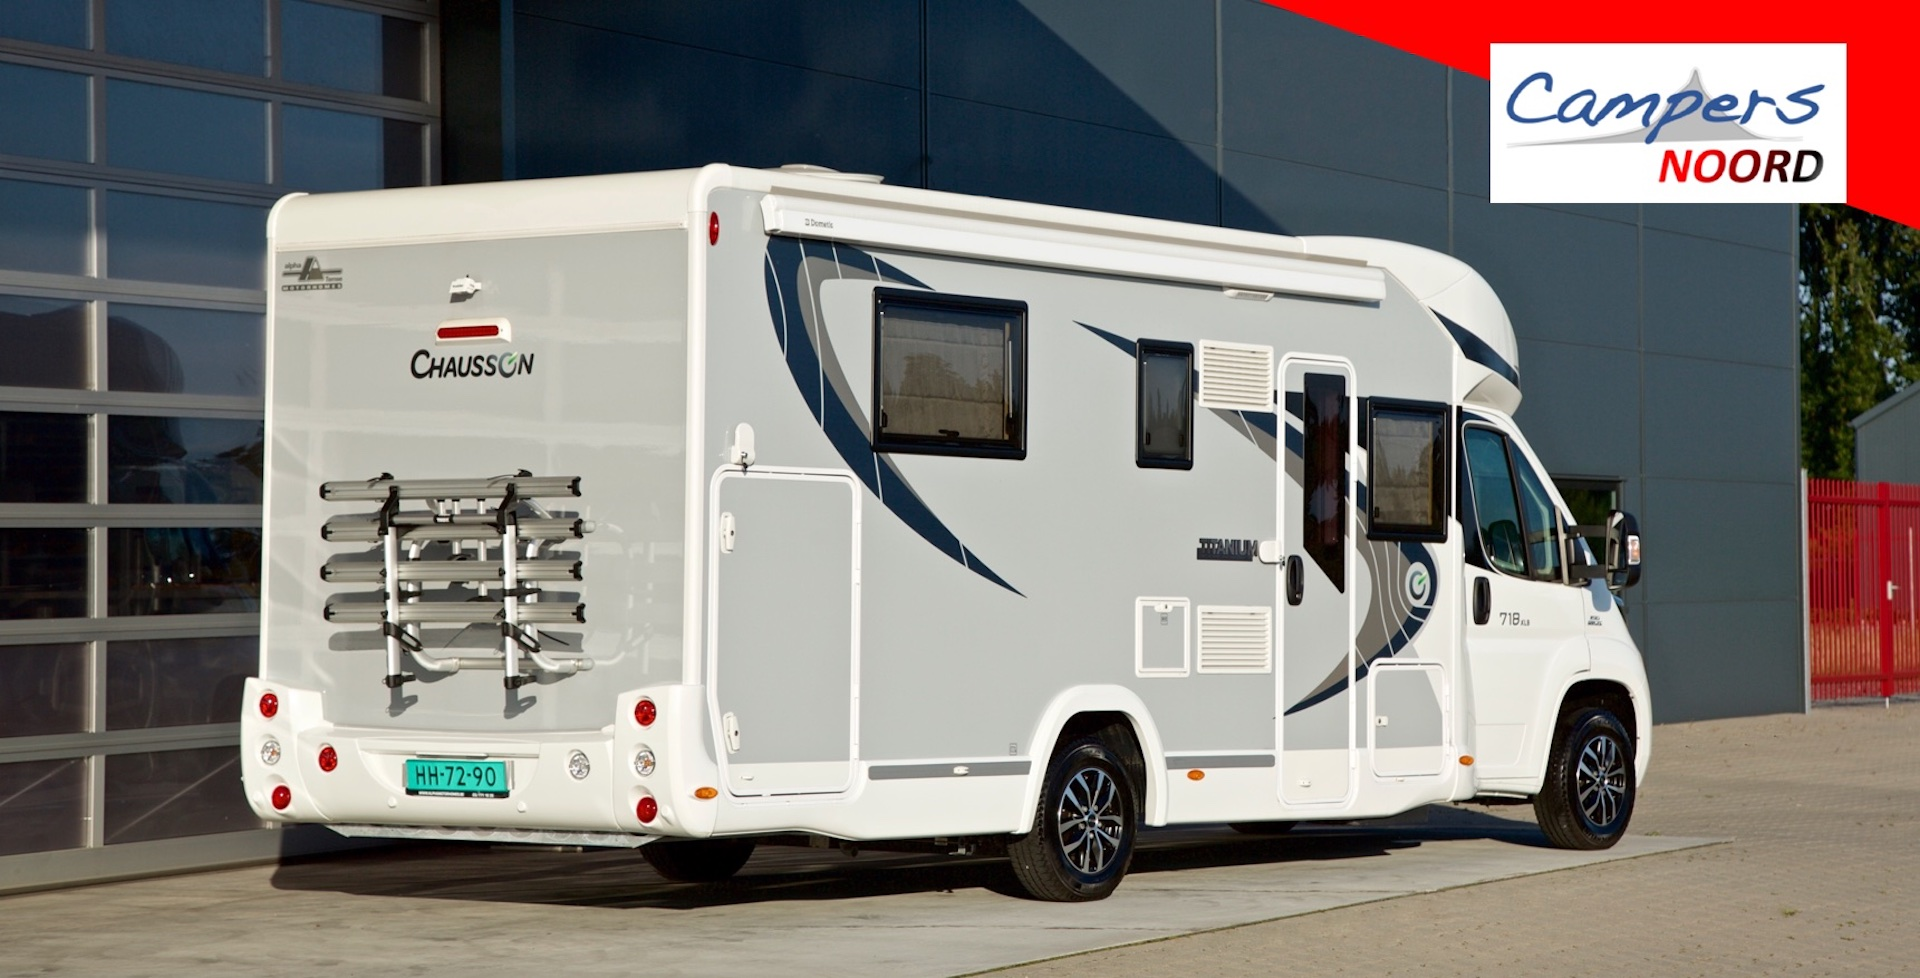 Chausson 718 XLB achterzijde rechts Campers Noord